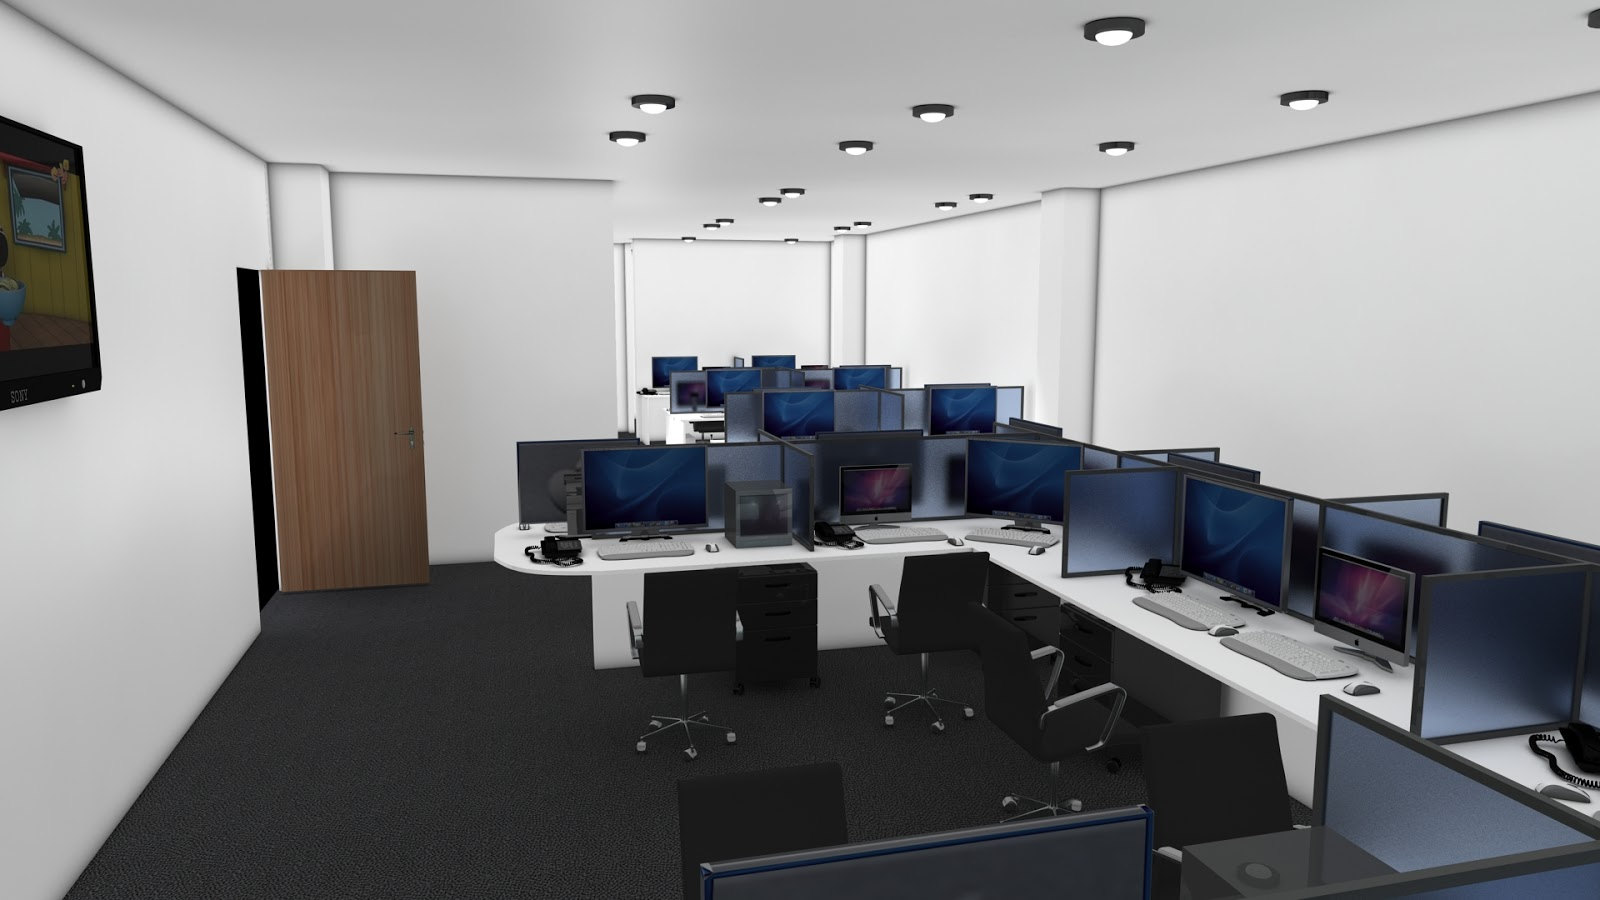 Sajid designer: Office interior design 3d max